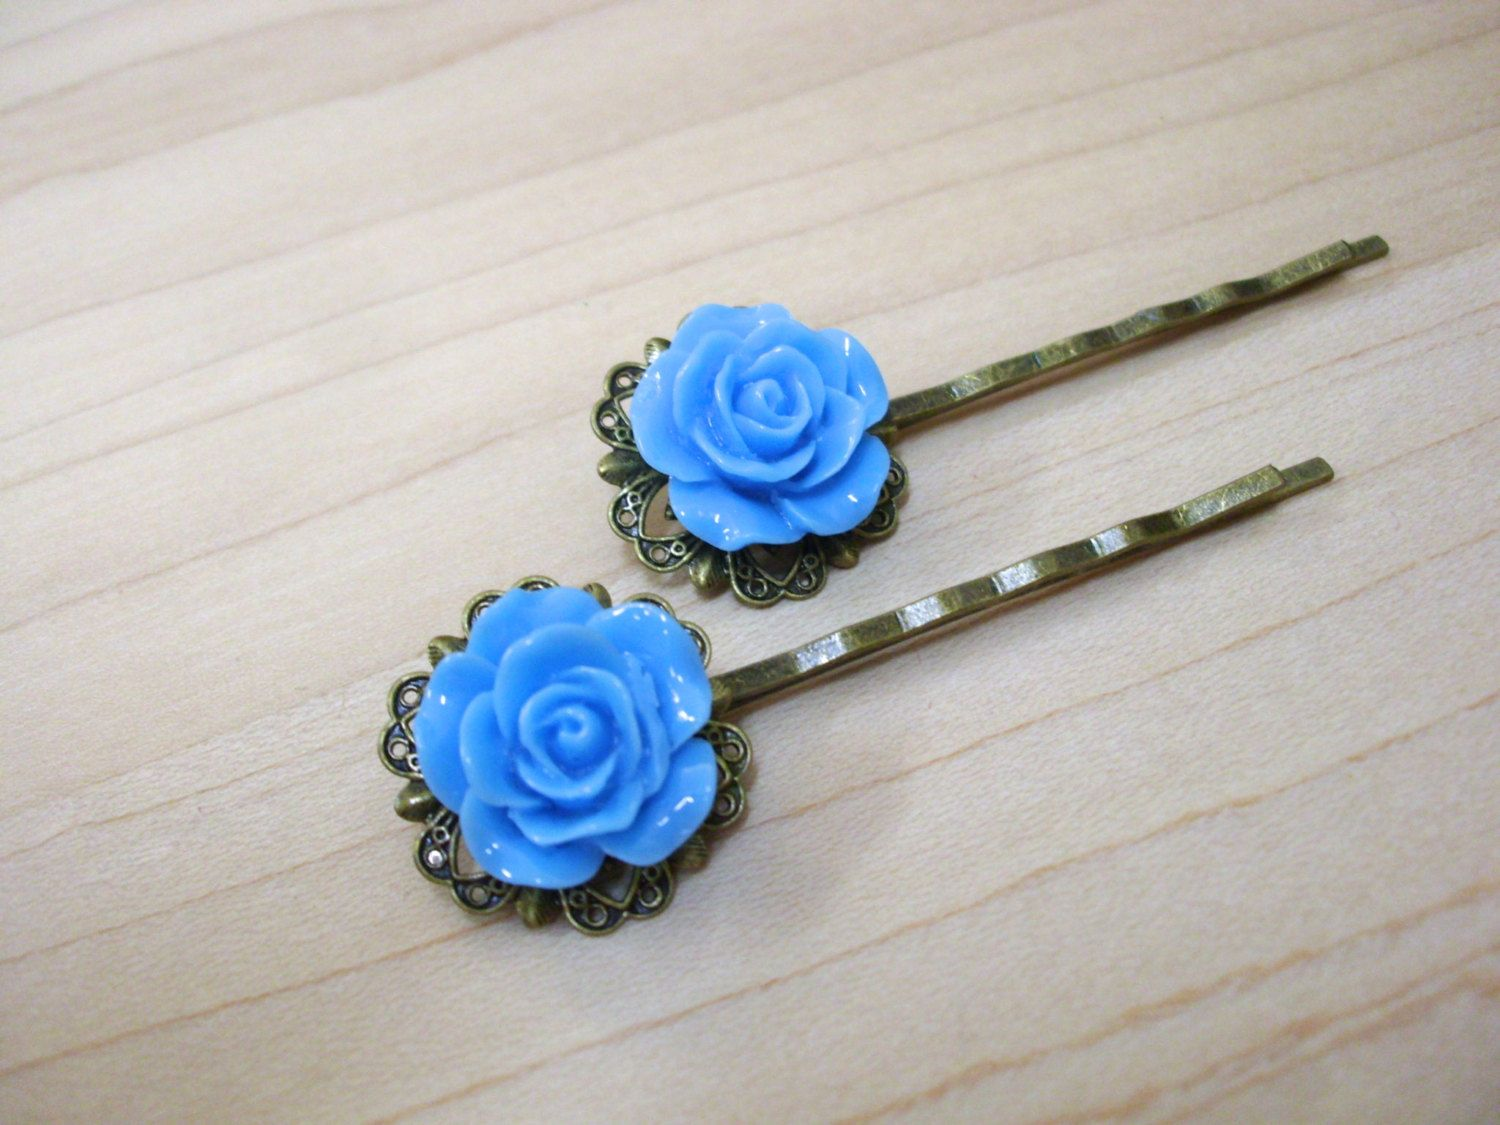 Blue roses flower bobby pins rose flower bobby pins rose bobby blue roses flower bobby pins rose flower bobby pins rose bobby pins vintage izmirmasajfo Image collections